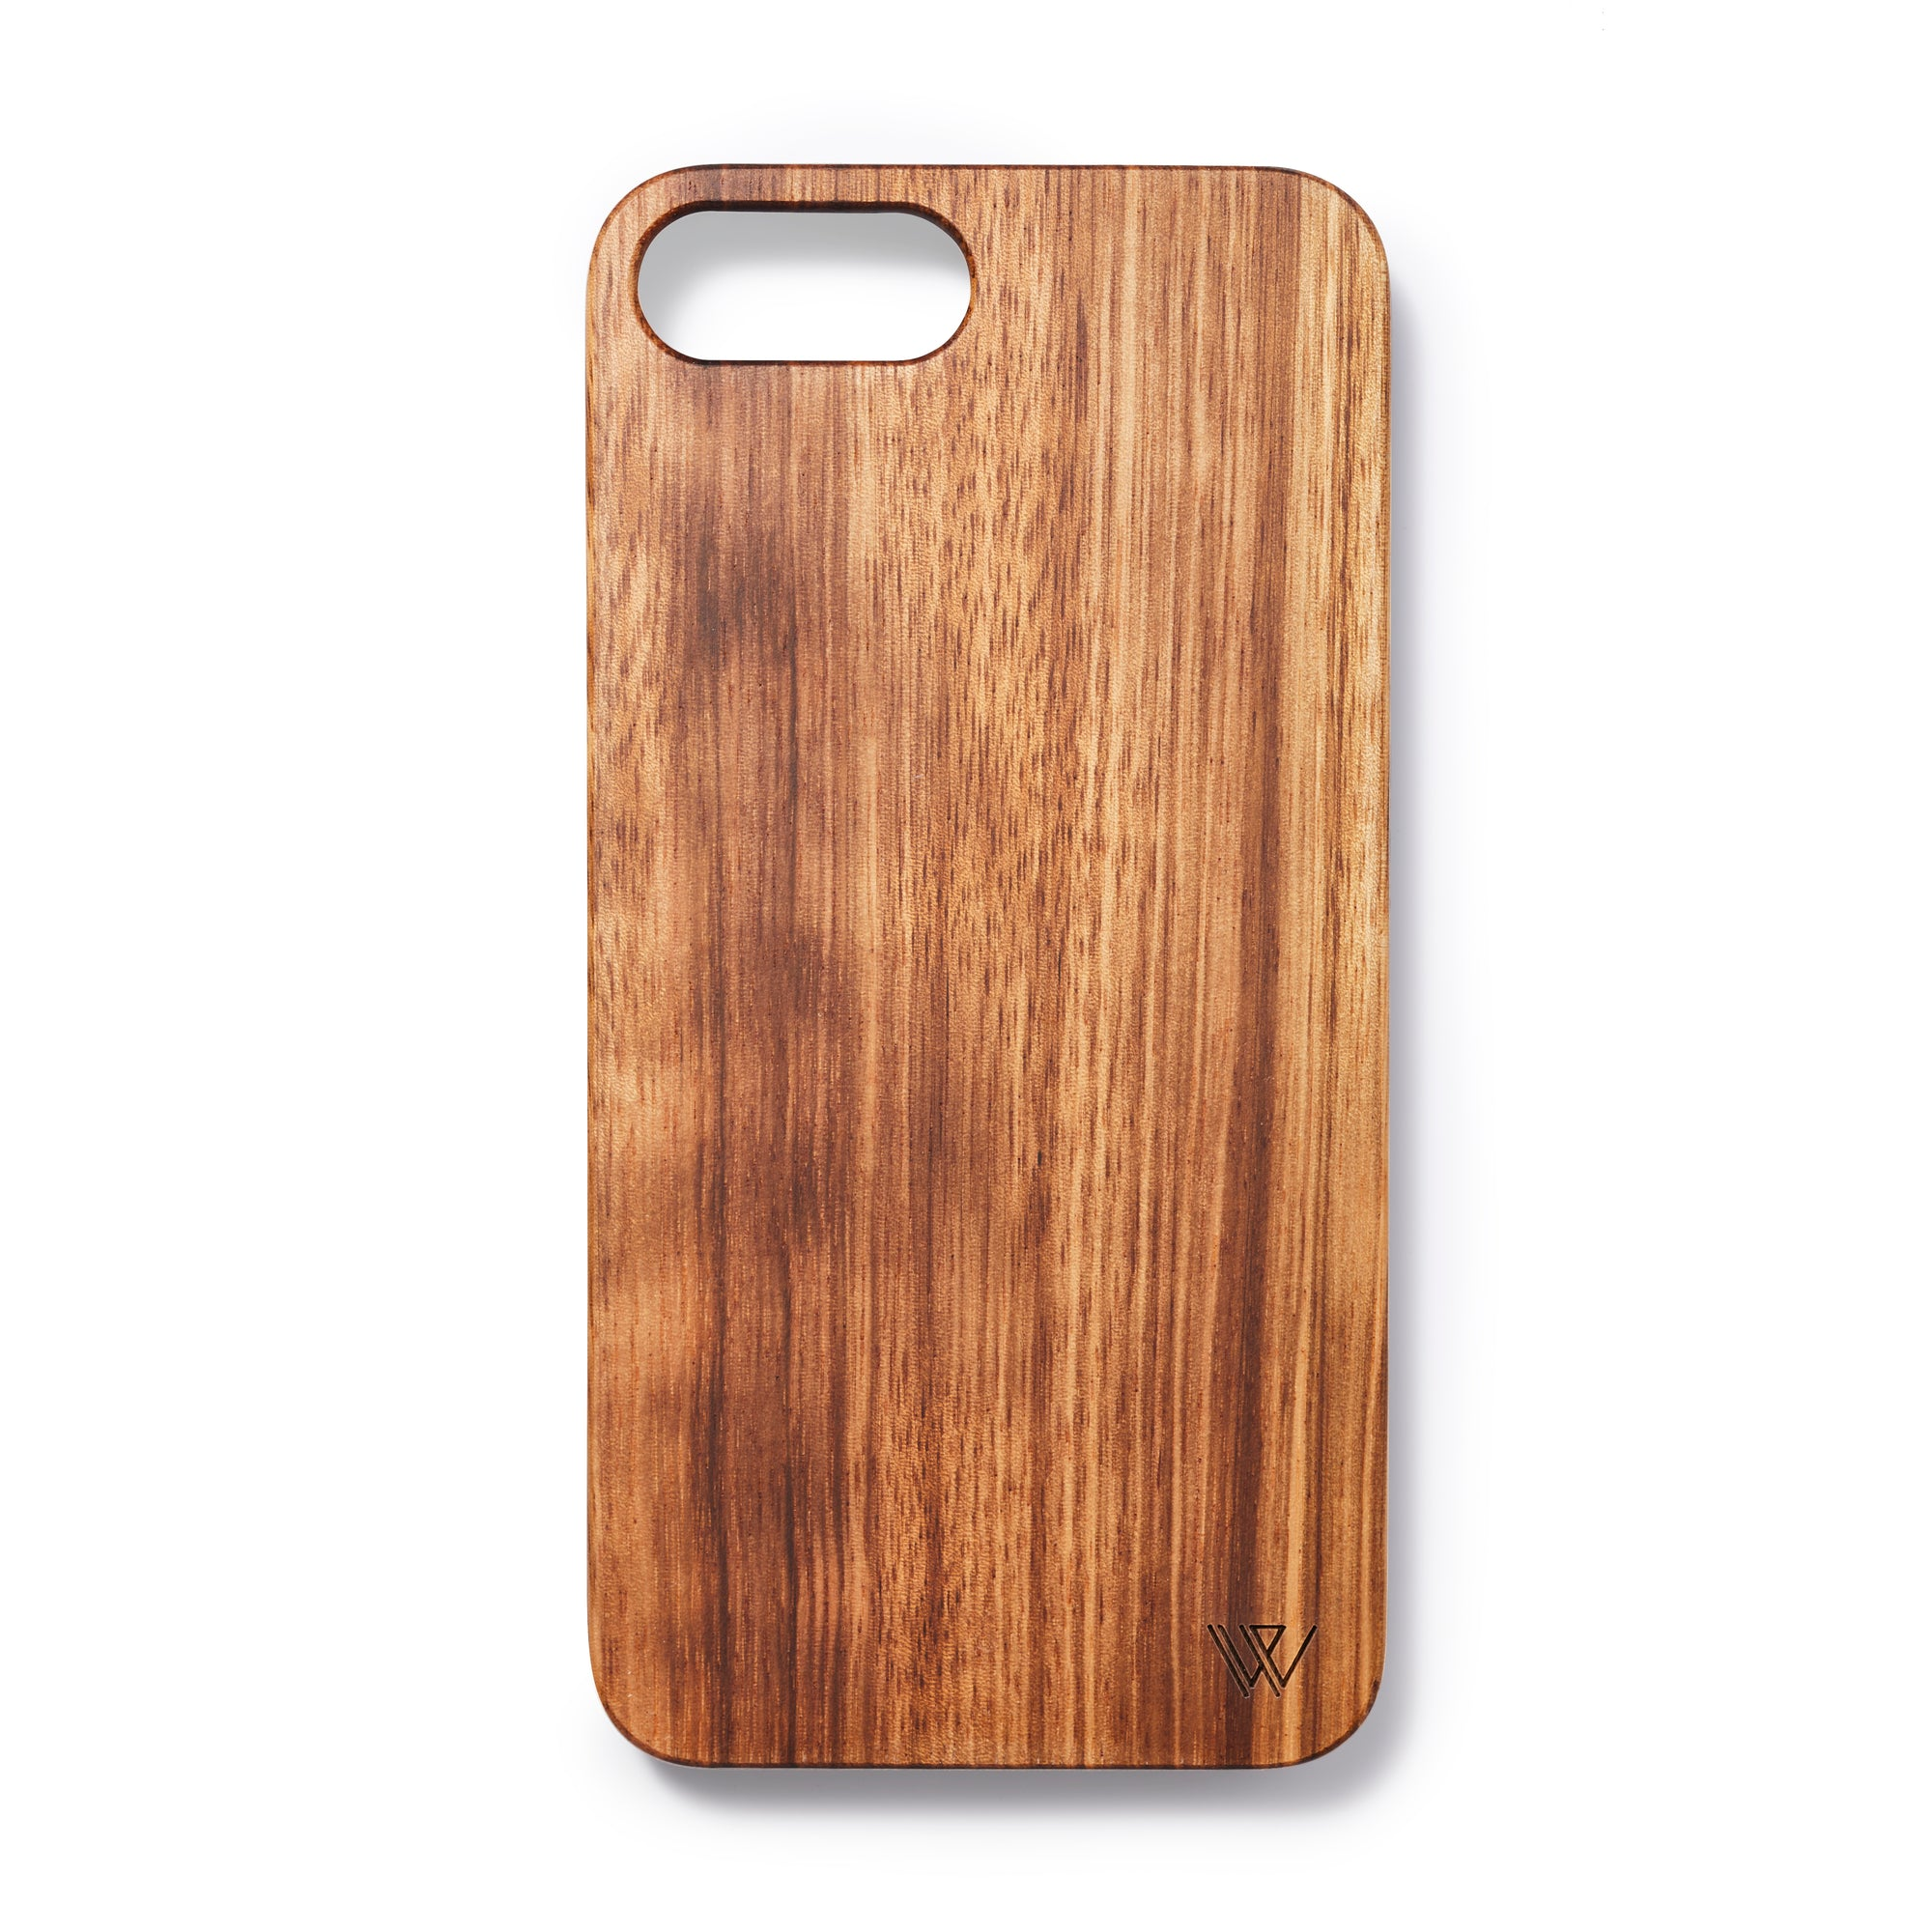 Wooden Iphone 6,7 and 8 plus back case zebrano - Woodstylz